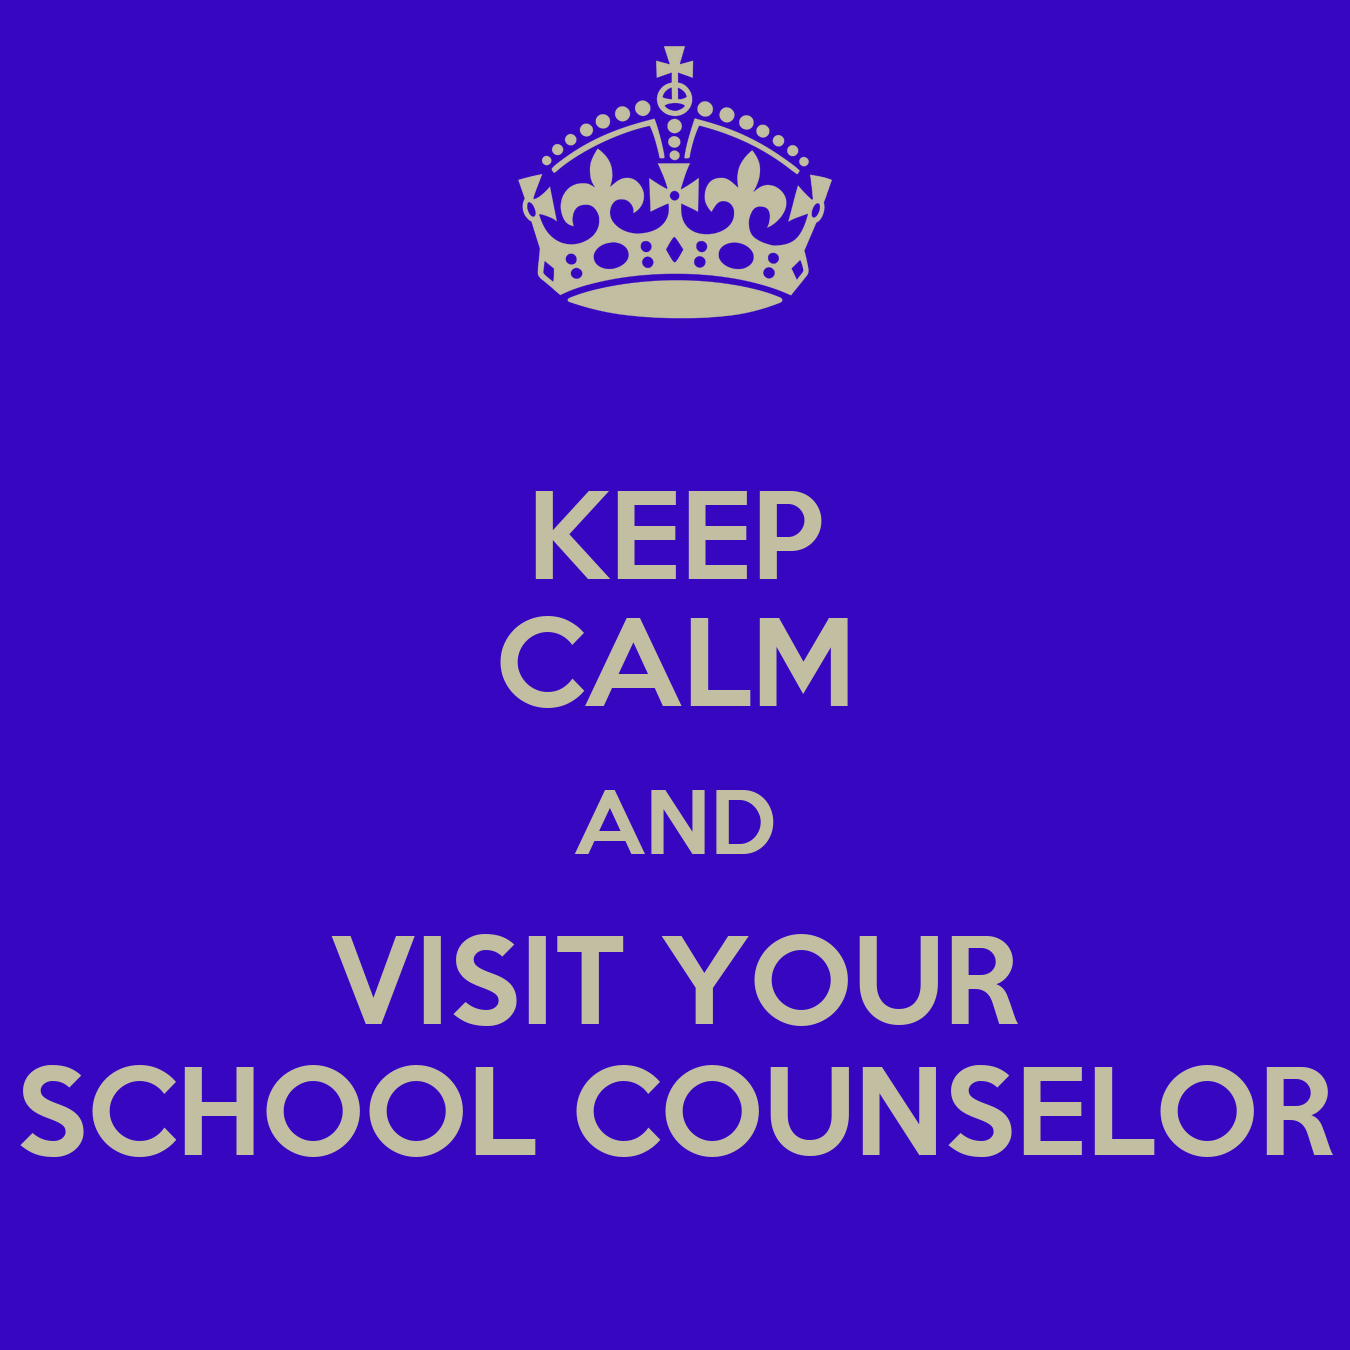 KEEP CALM AND VISIT YOUR SCHOOL COUNSELOR Poster | Amy ...